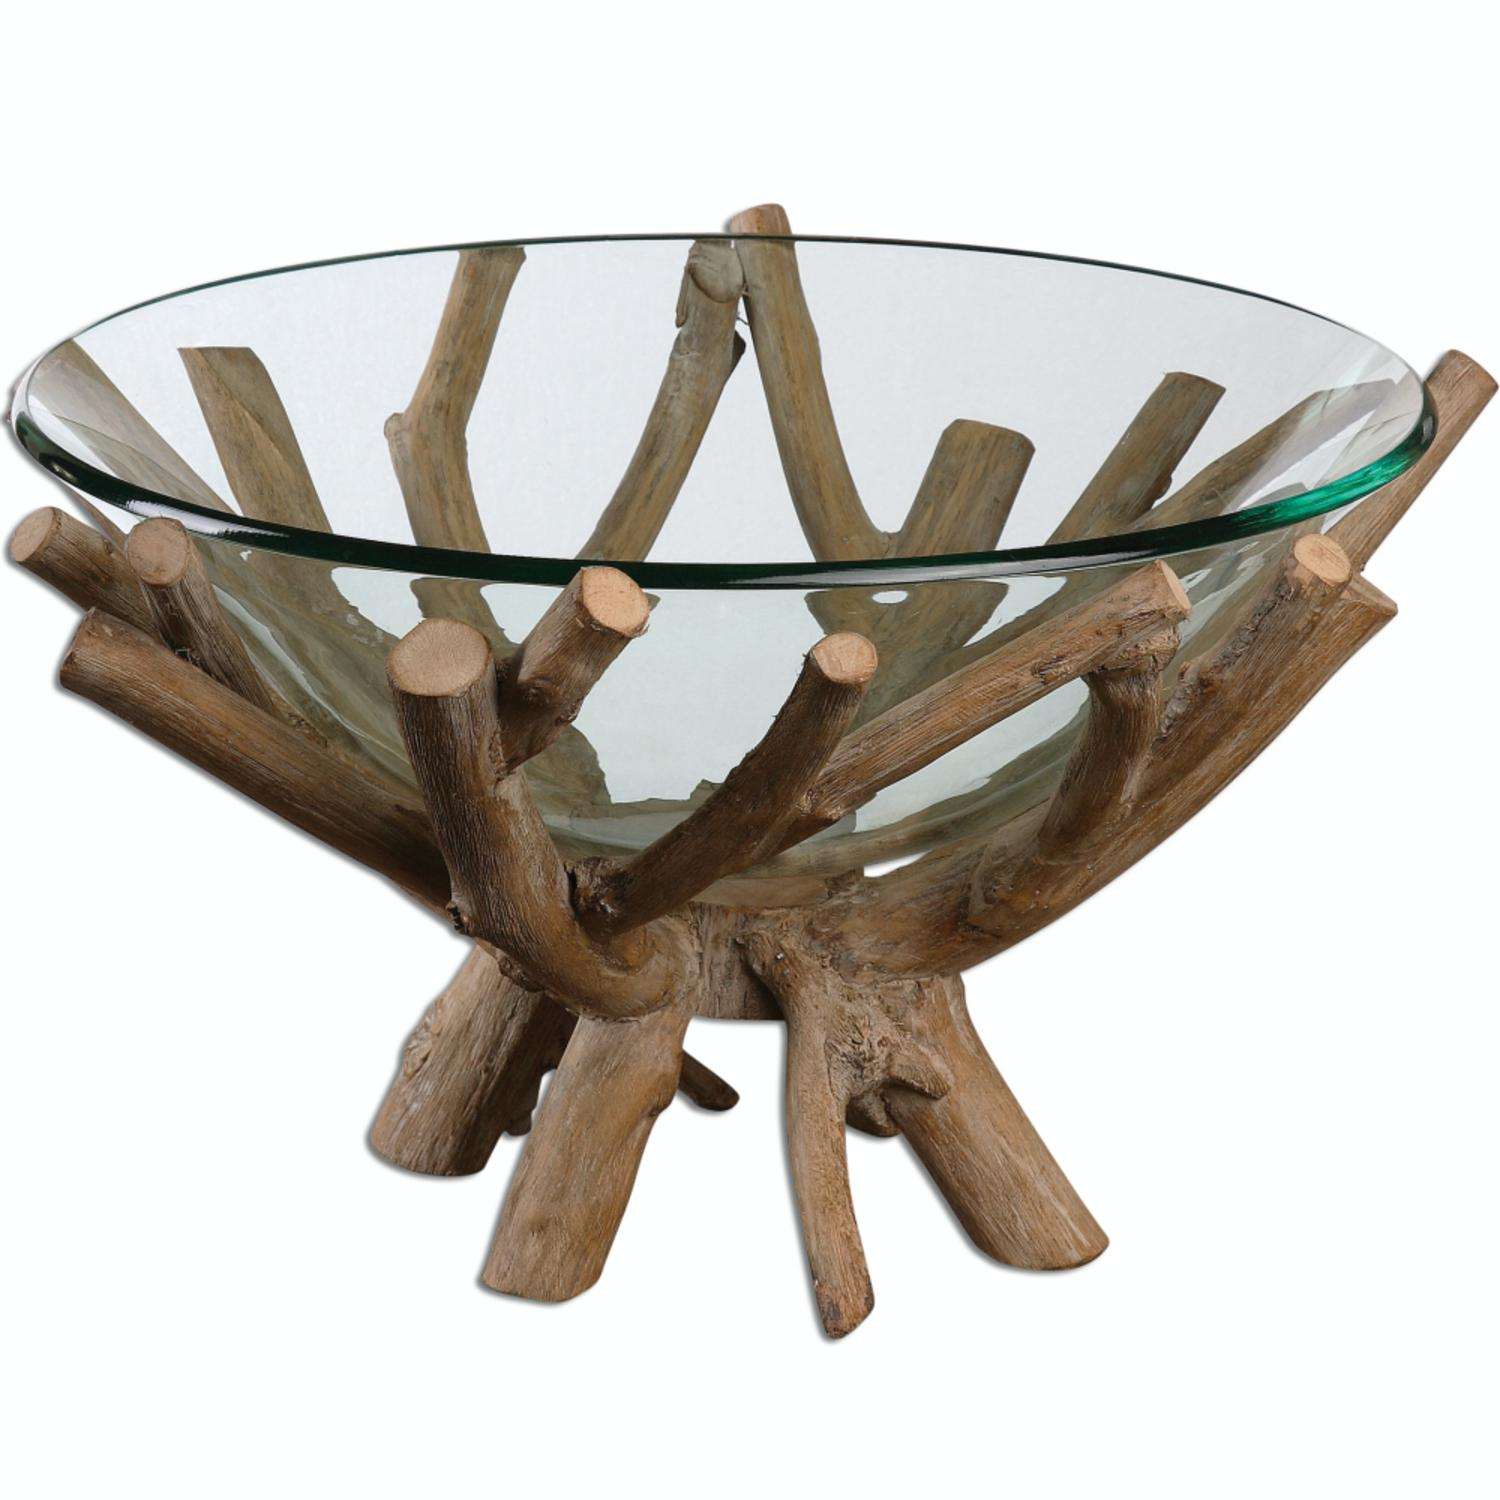 19 625 rustic lodge style decorative clear glass bowl with wooden base walmart com